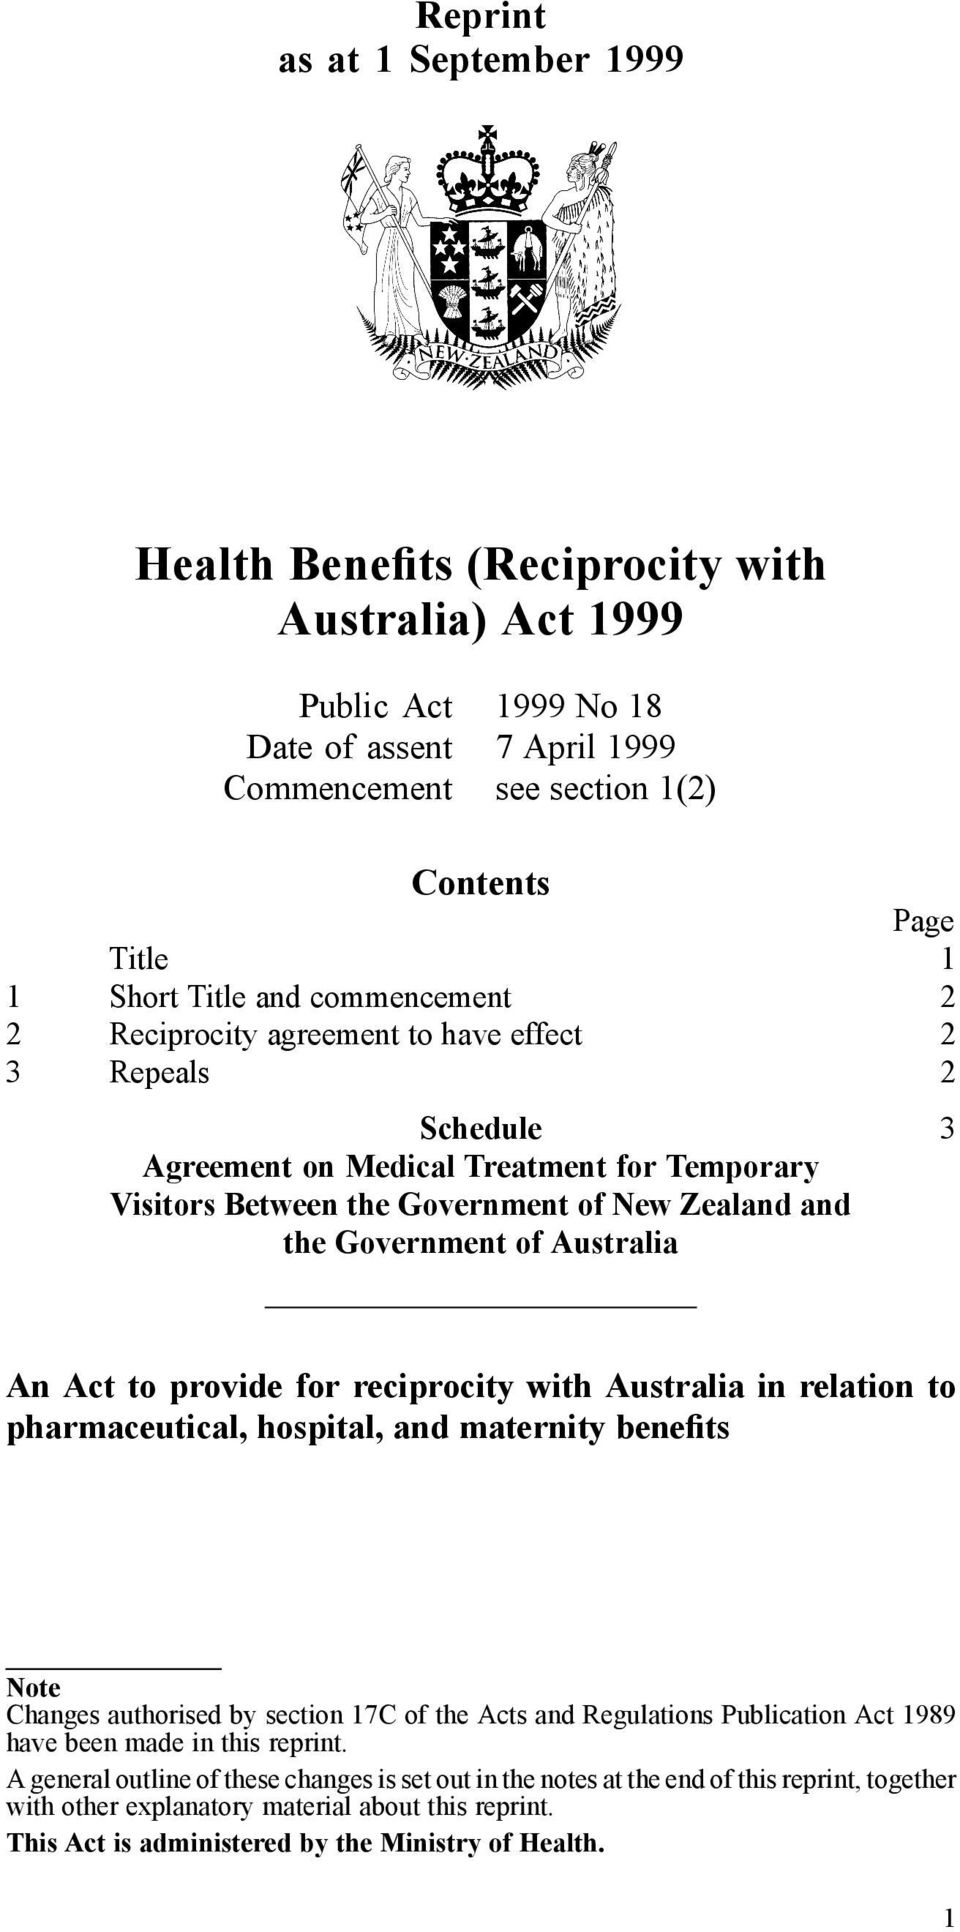 Australia in relation to pharmaceutical, hospital, and maternity benefits Note Changes authorised by section 17C of the Acts and Regulations Publication Act 1989 have been made in this reprint.